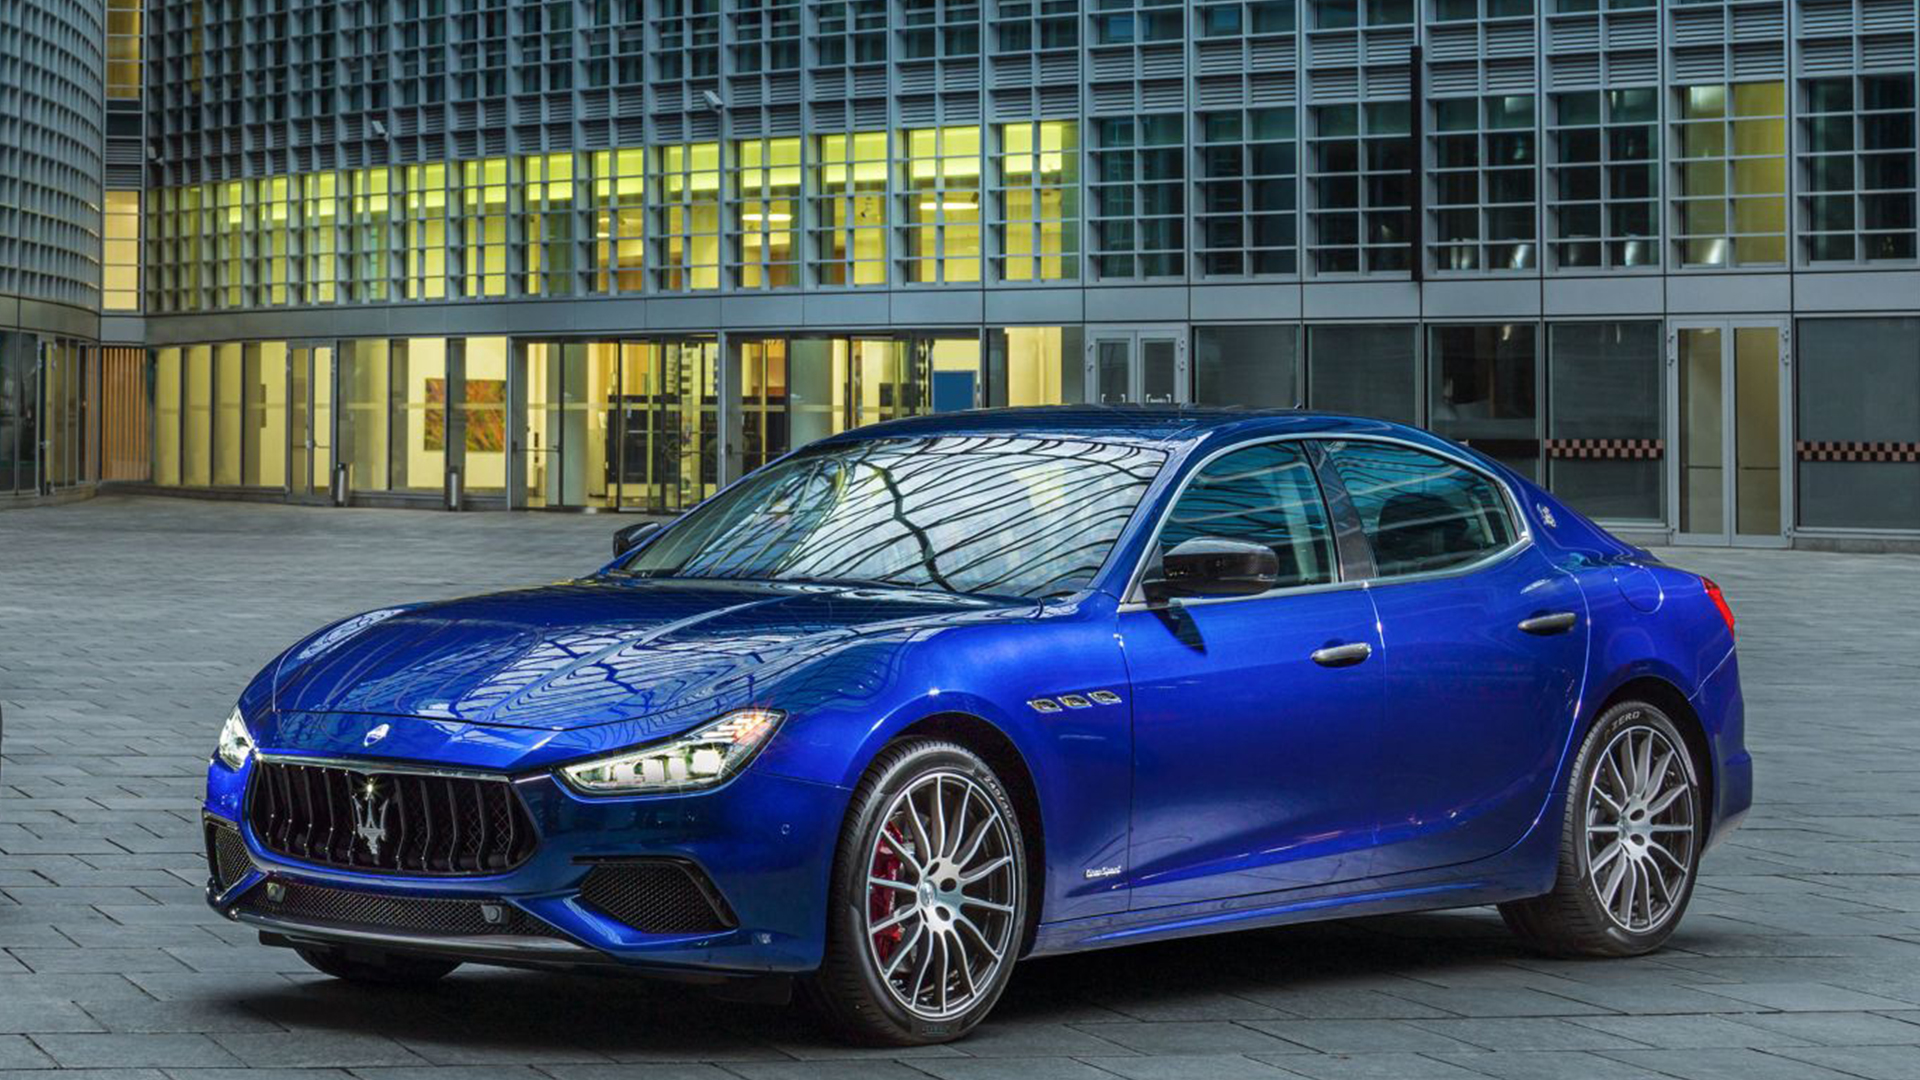 maserati ghibli 2018 price mileage reviews specification gallery overdrive. Black Bedroom Furniture Sets. Home Design Ideas